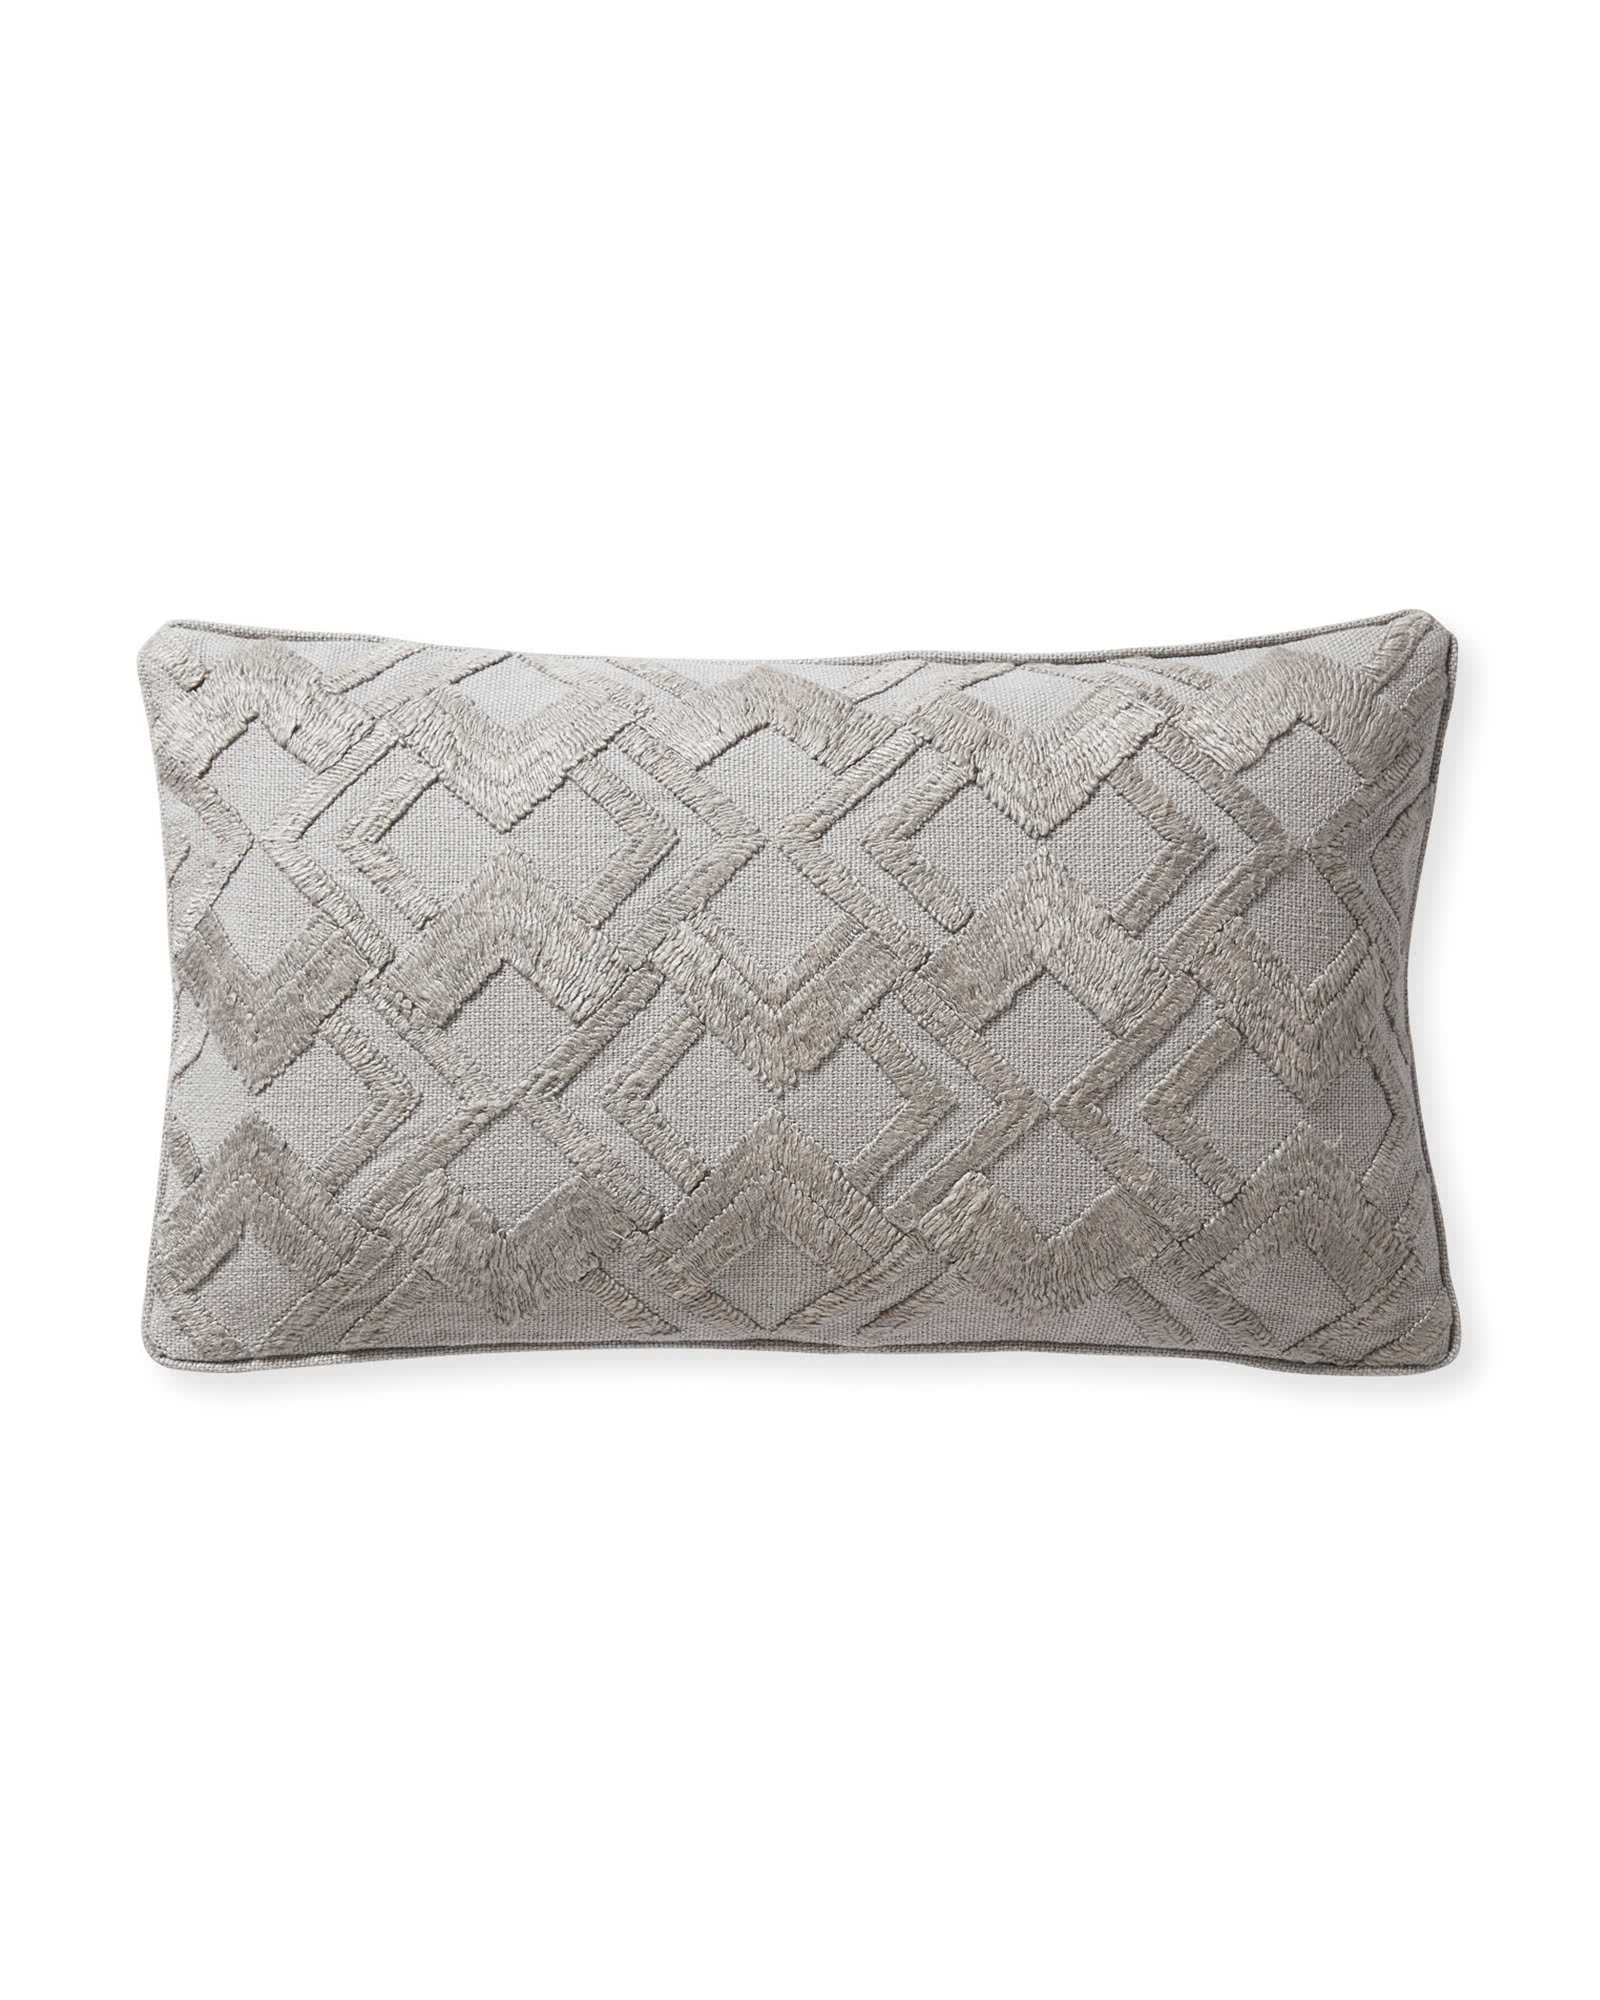 Paige Pillow Cover, Smoke